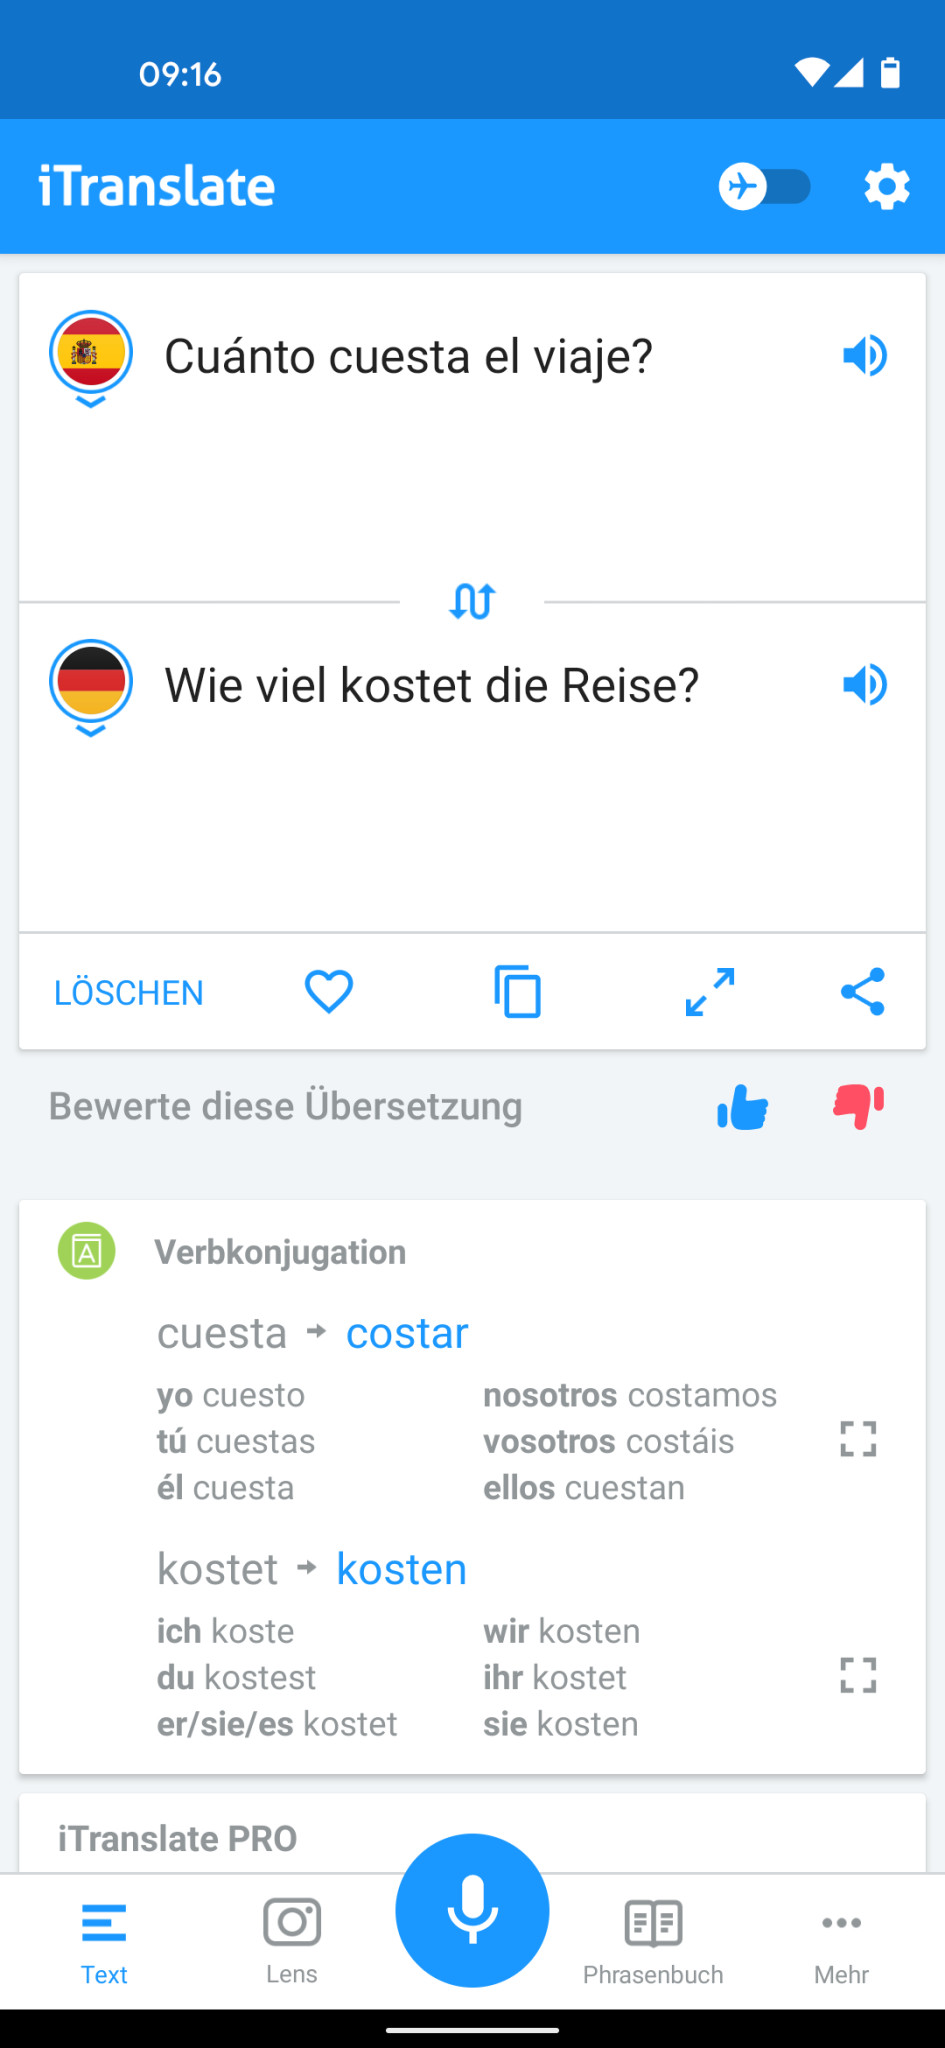 Screenshot 1 - iTranslate Übersetzer (Android-App)